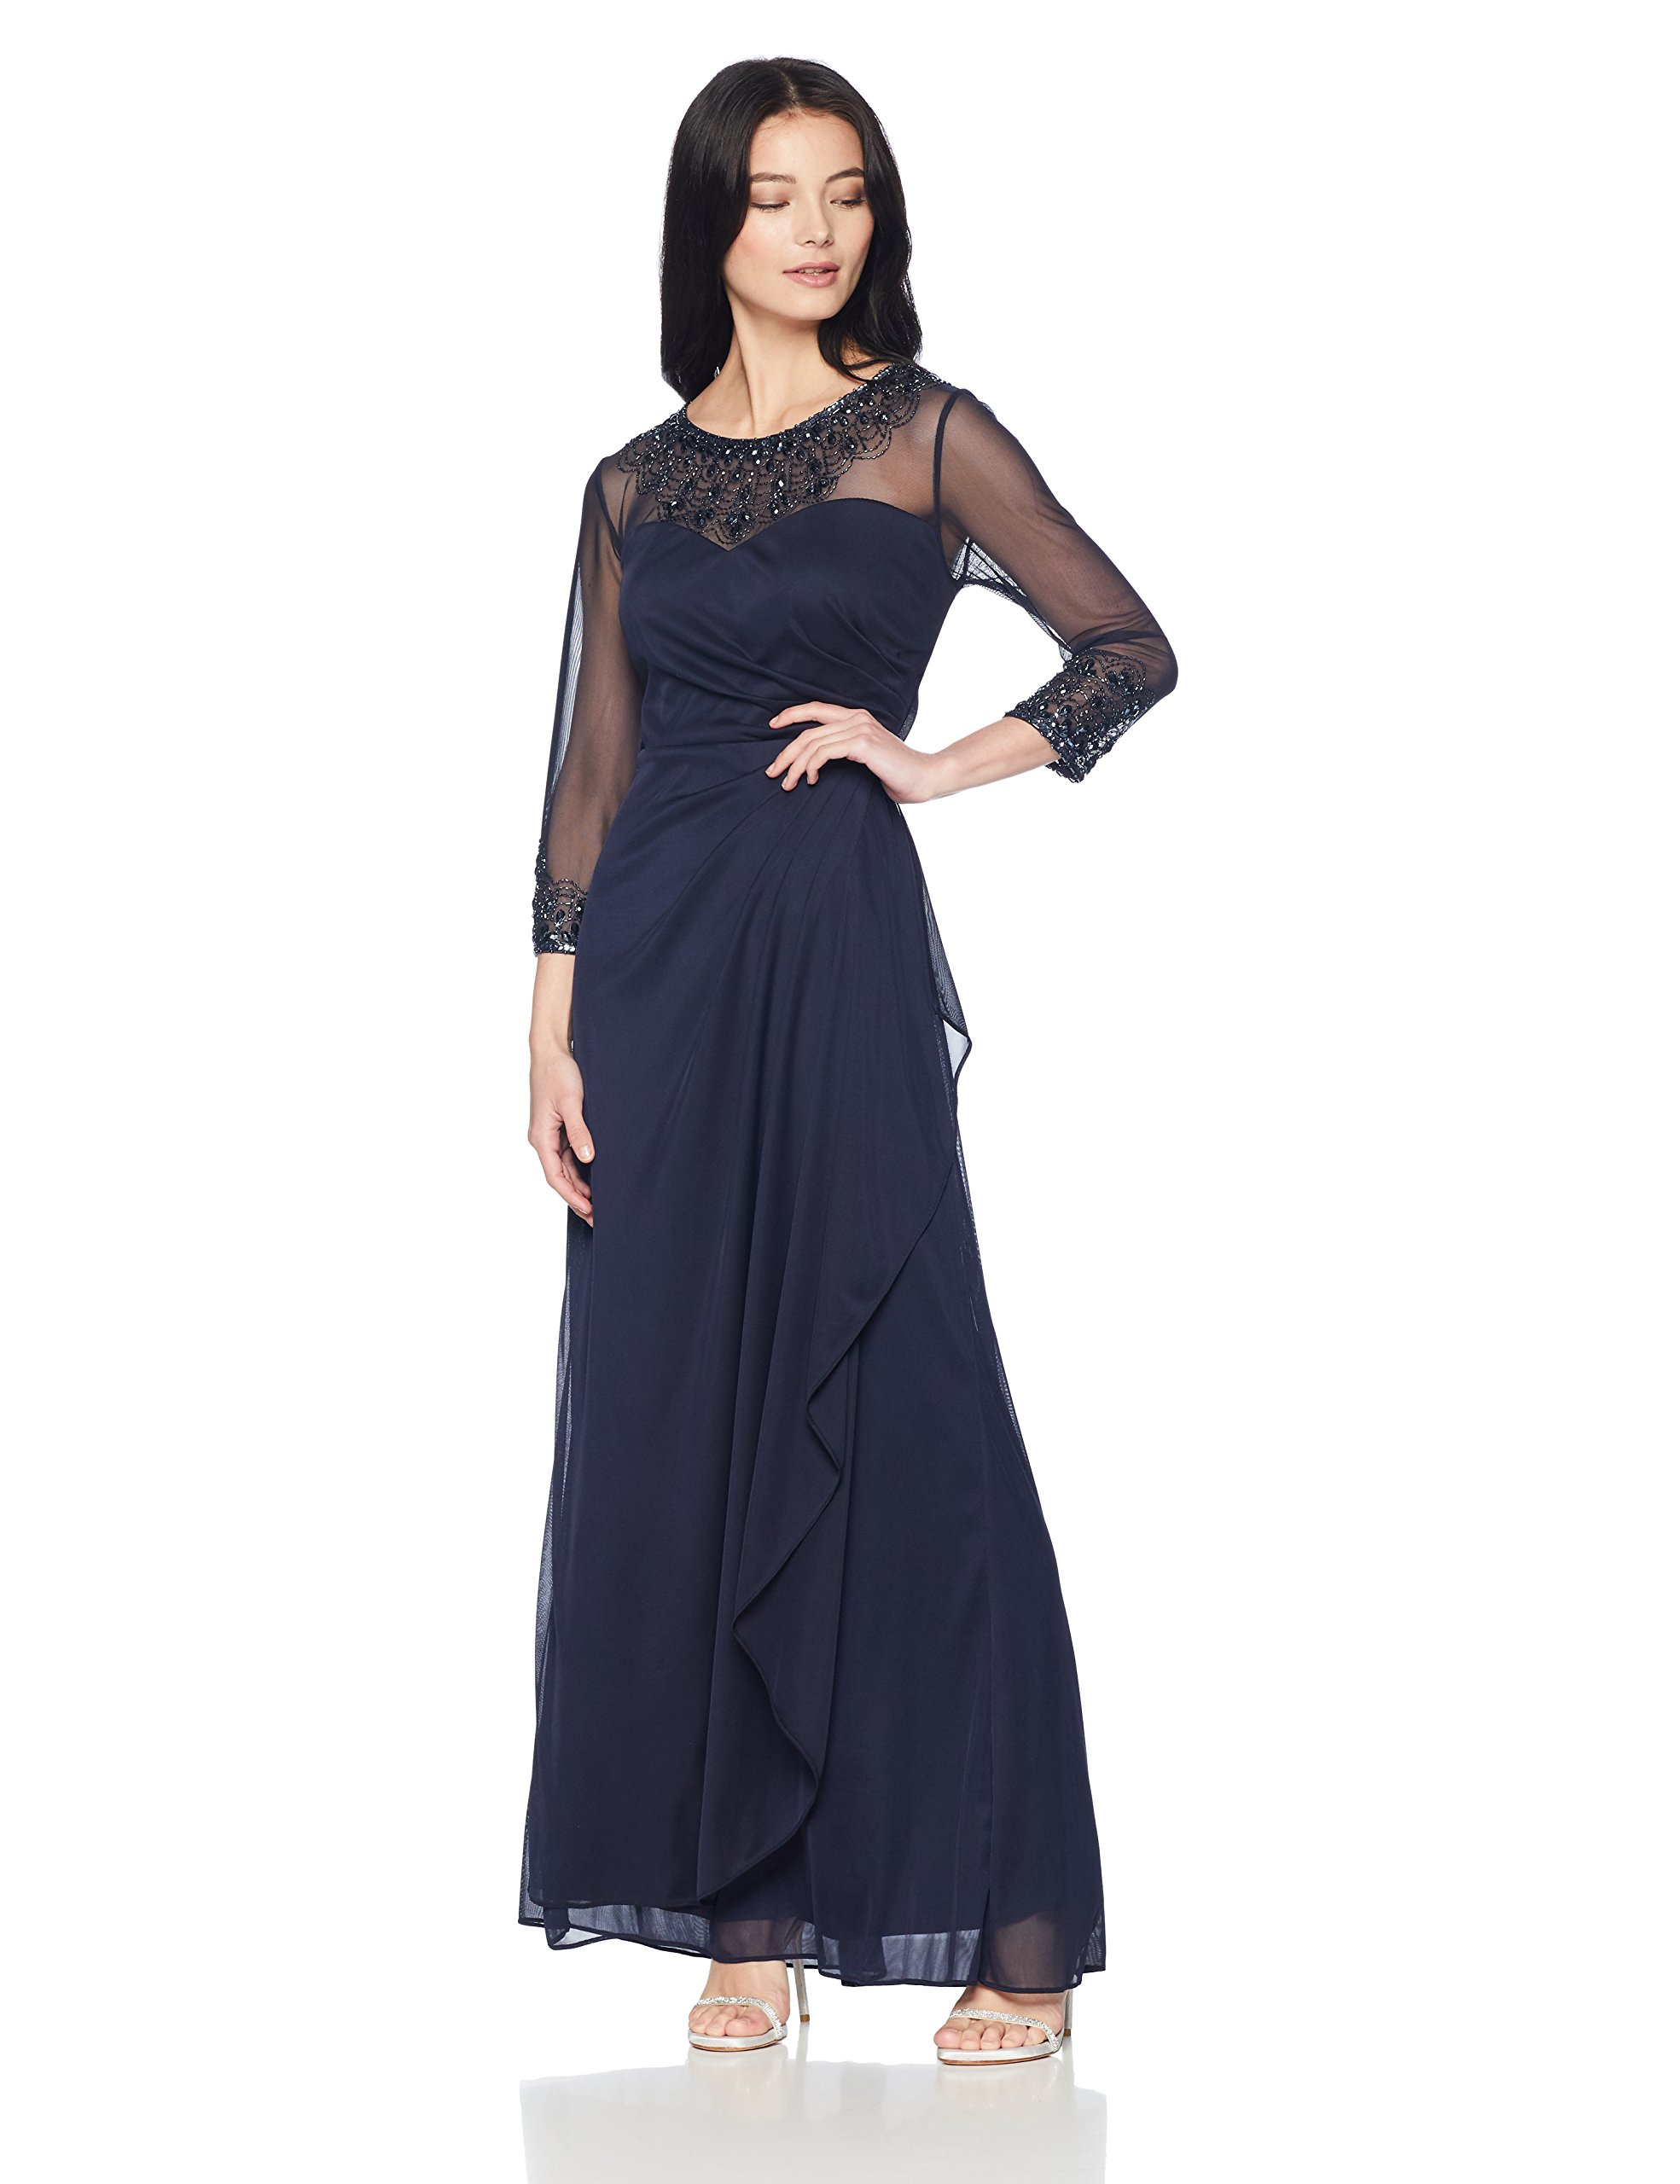 Mother Of The Bride Dresses - Women's Long A Line Illusion Sweetheart Neck Dress (Petite And Regular)